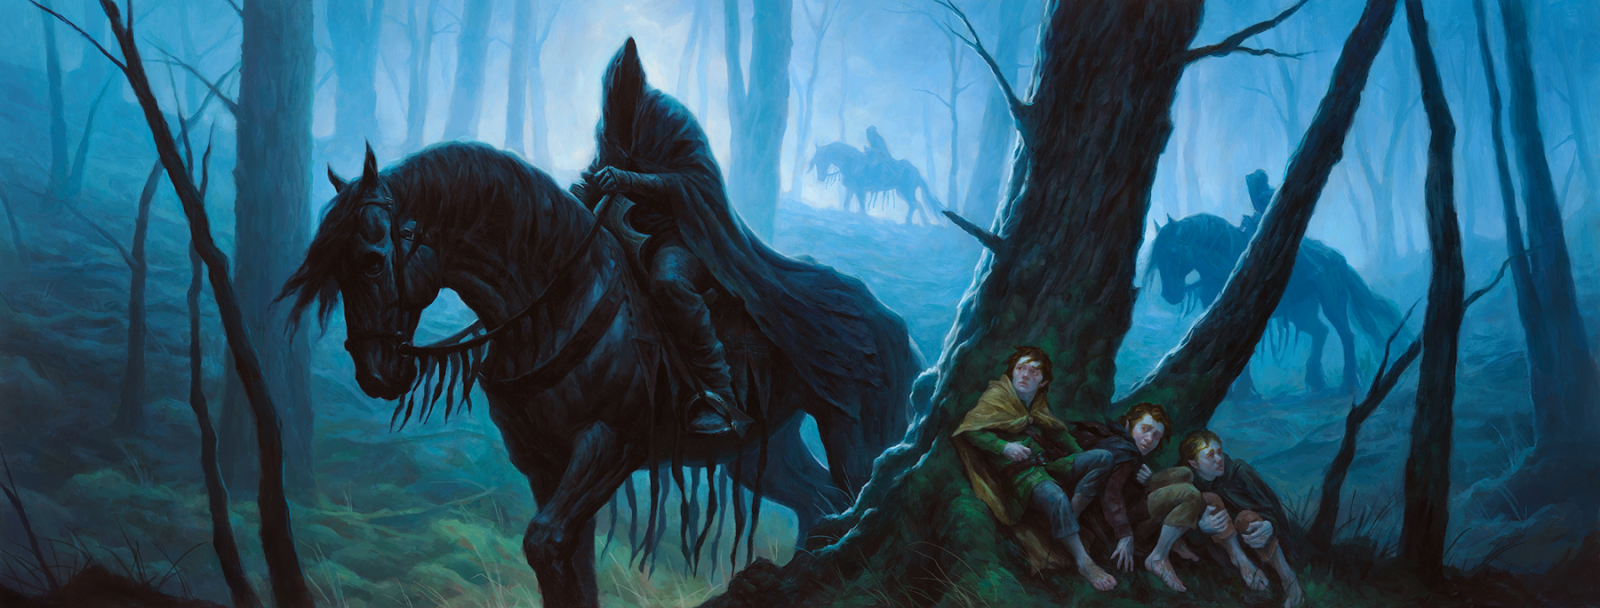 Lord Of The Rings Lcg Nazgul